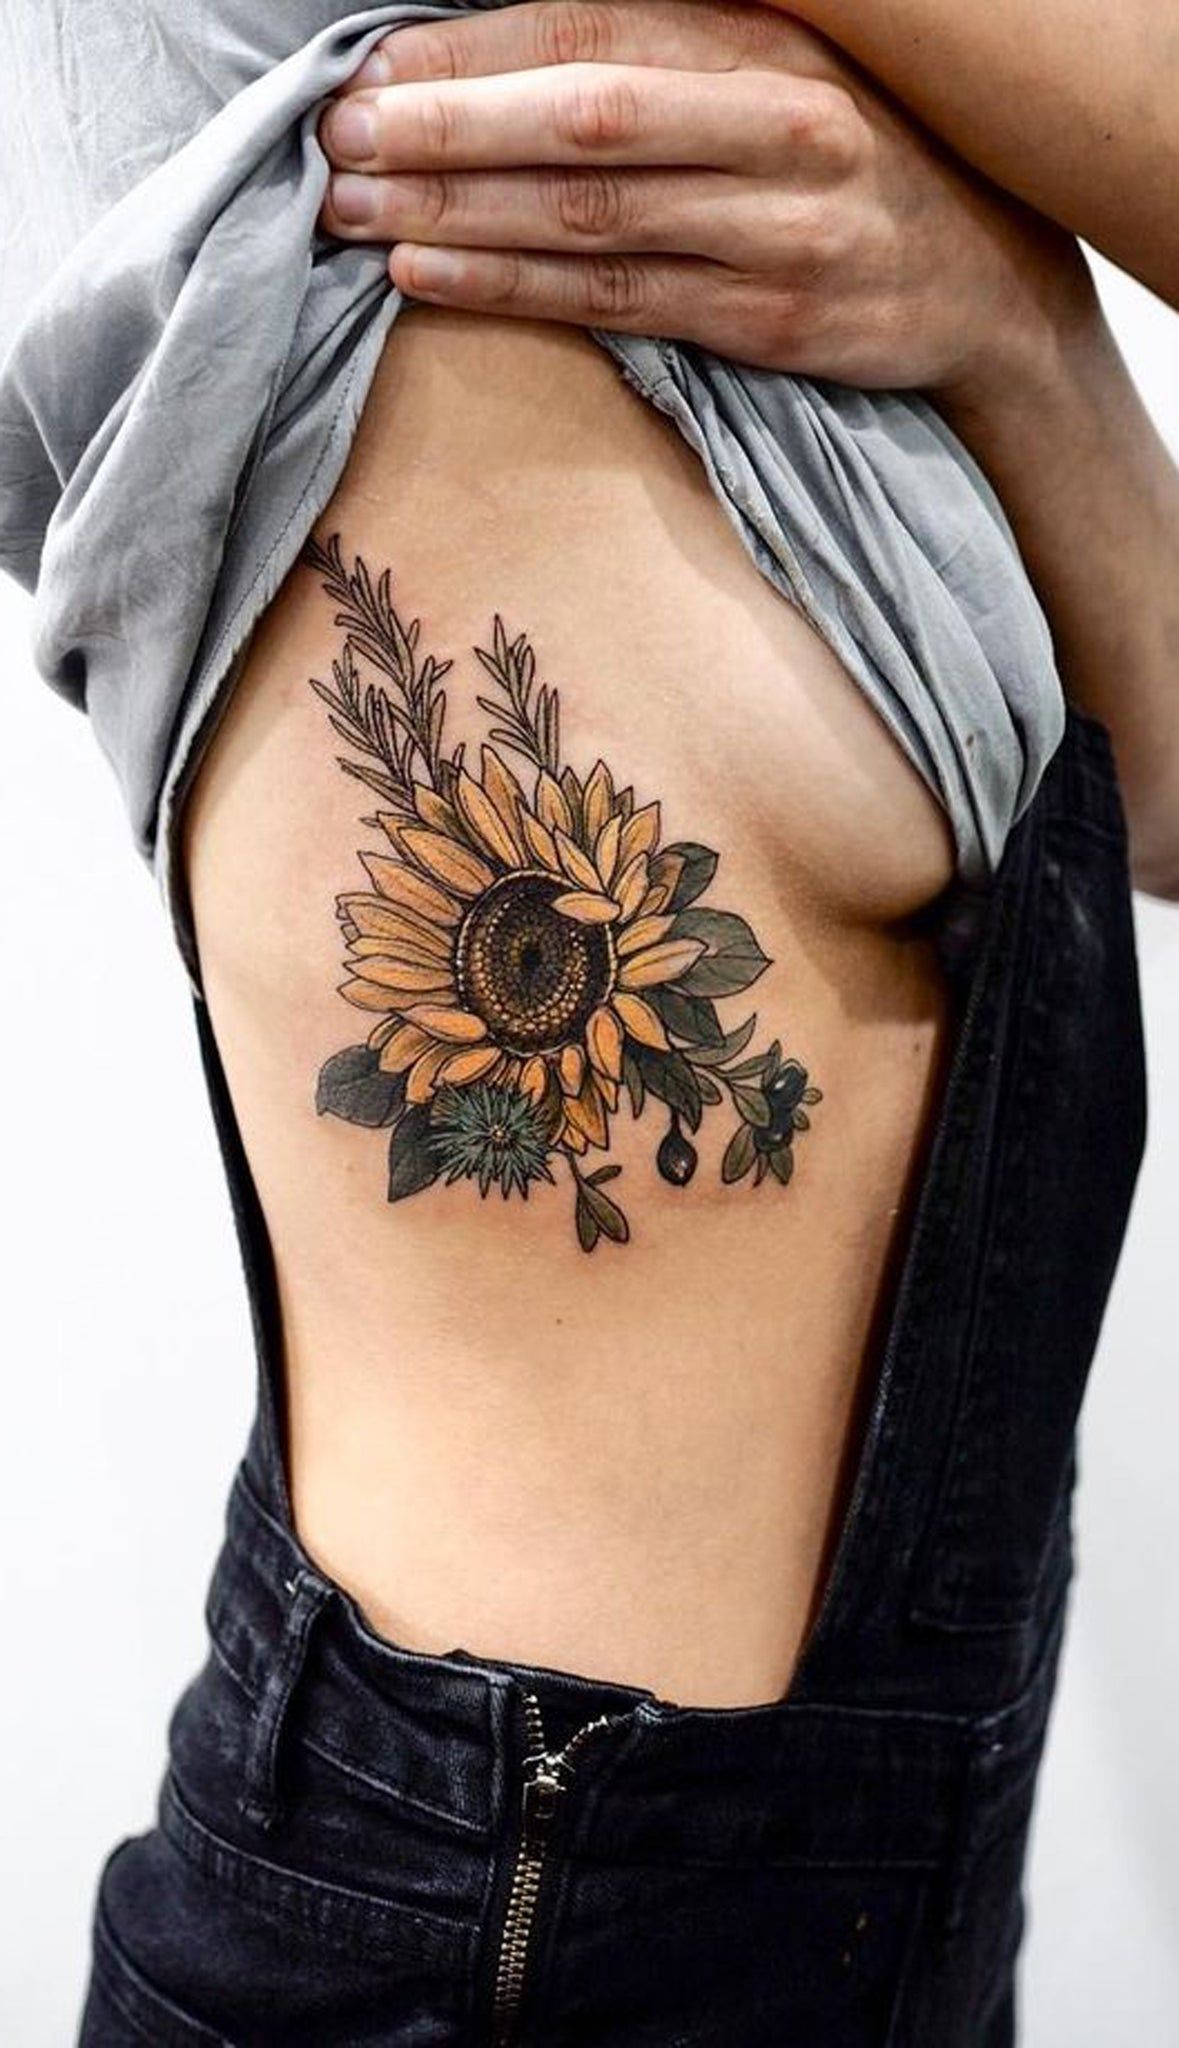 20 Of The Most Boujee Sunflower Tattoo Ideas Mybodiart